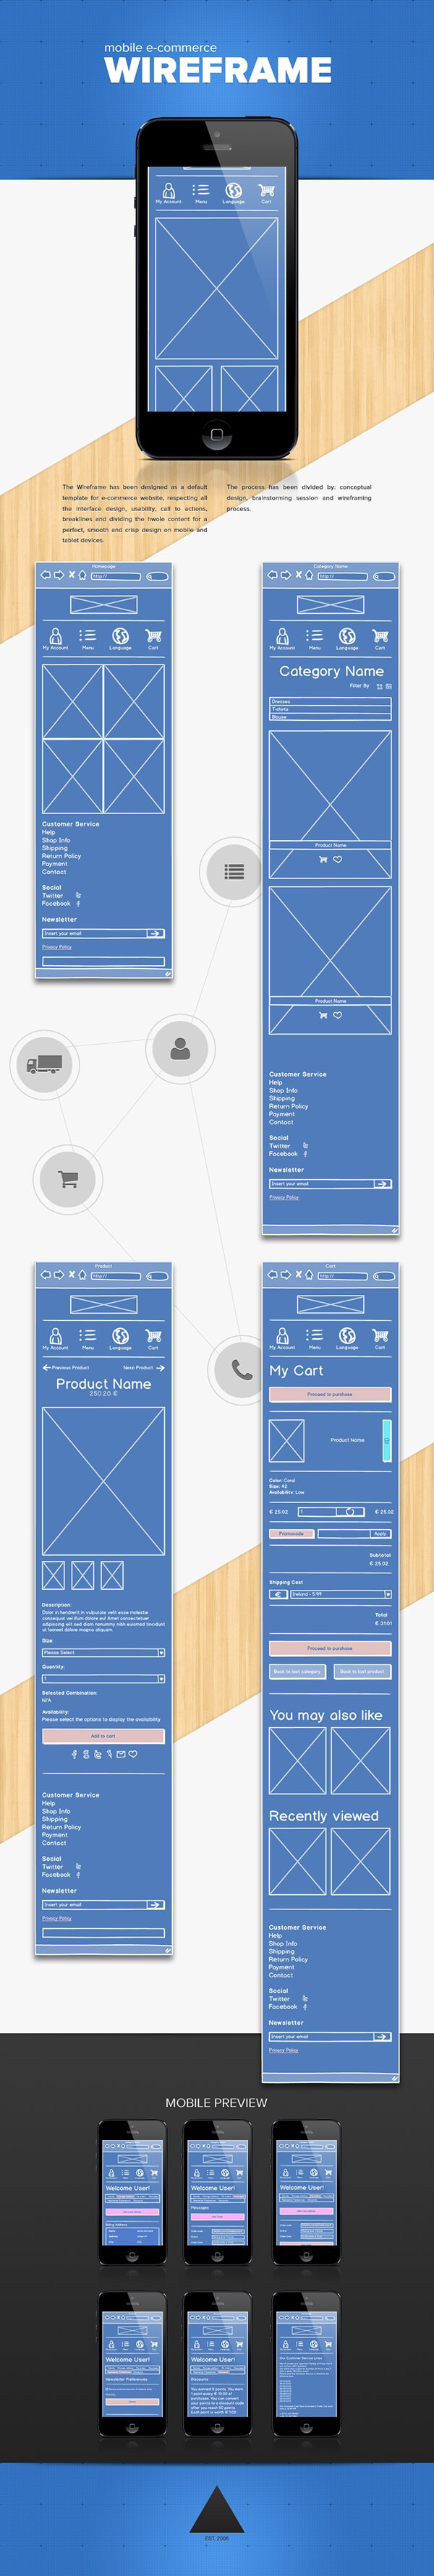 Wireframe e commerce mobile l 39 infographie pratique for E commerce mobili